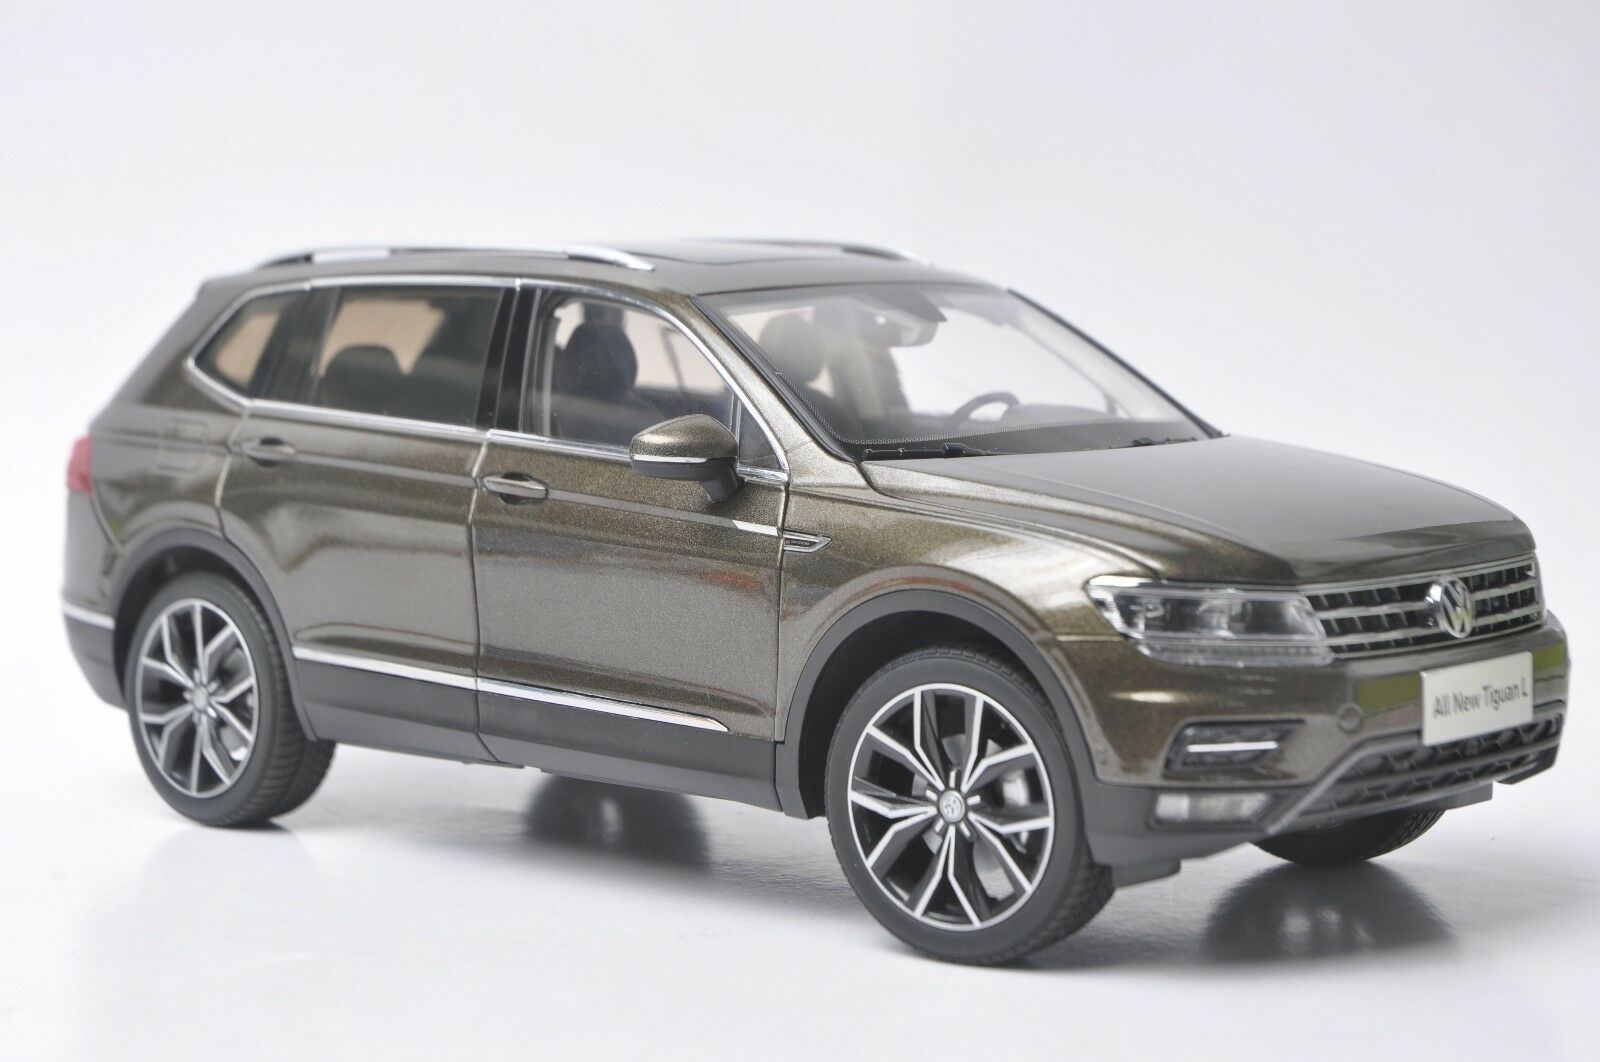 Volkswagen Tiguan L 2017 car model in scale 1:18 Marrone